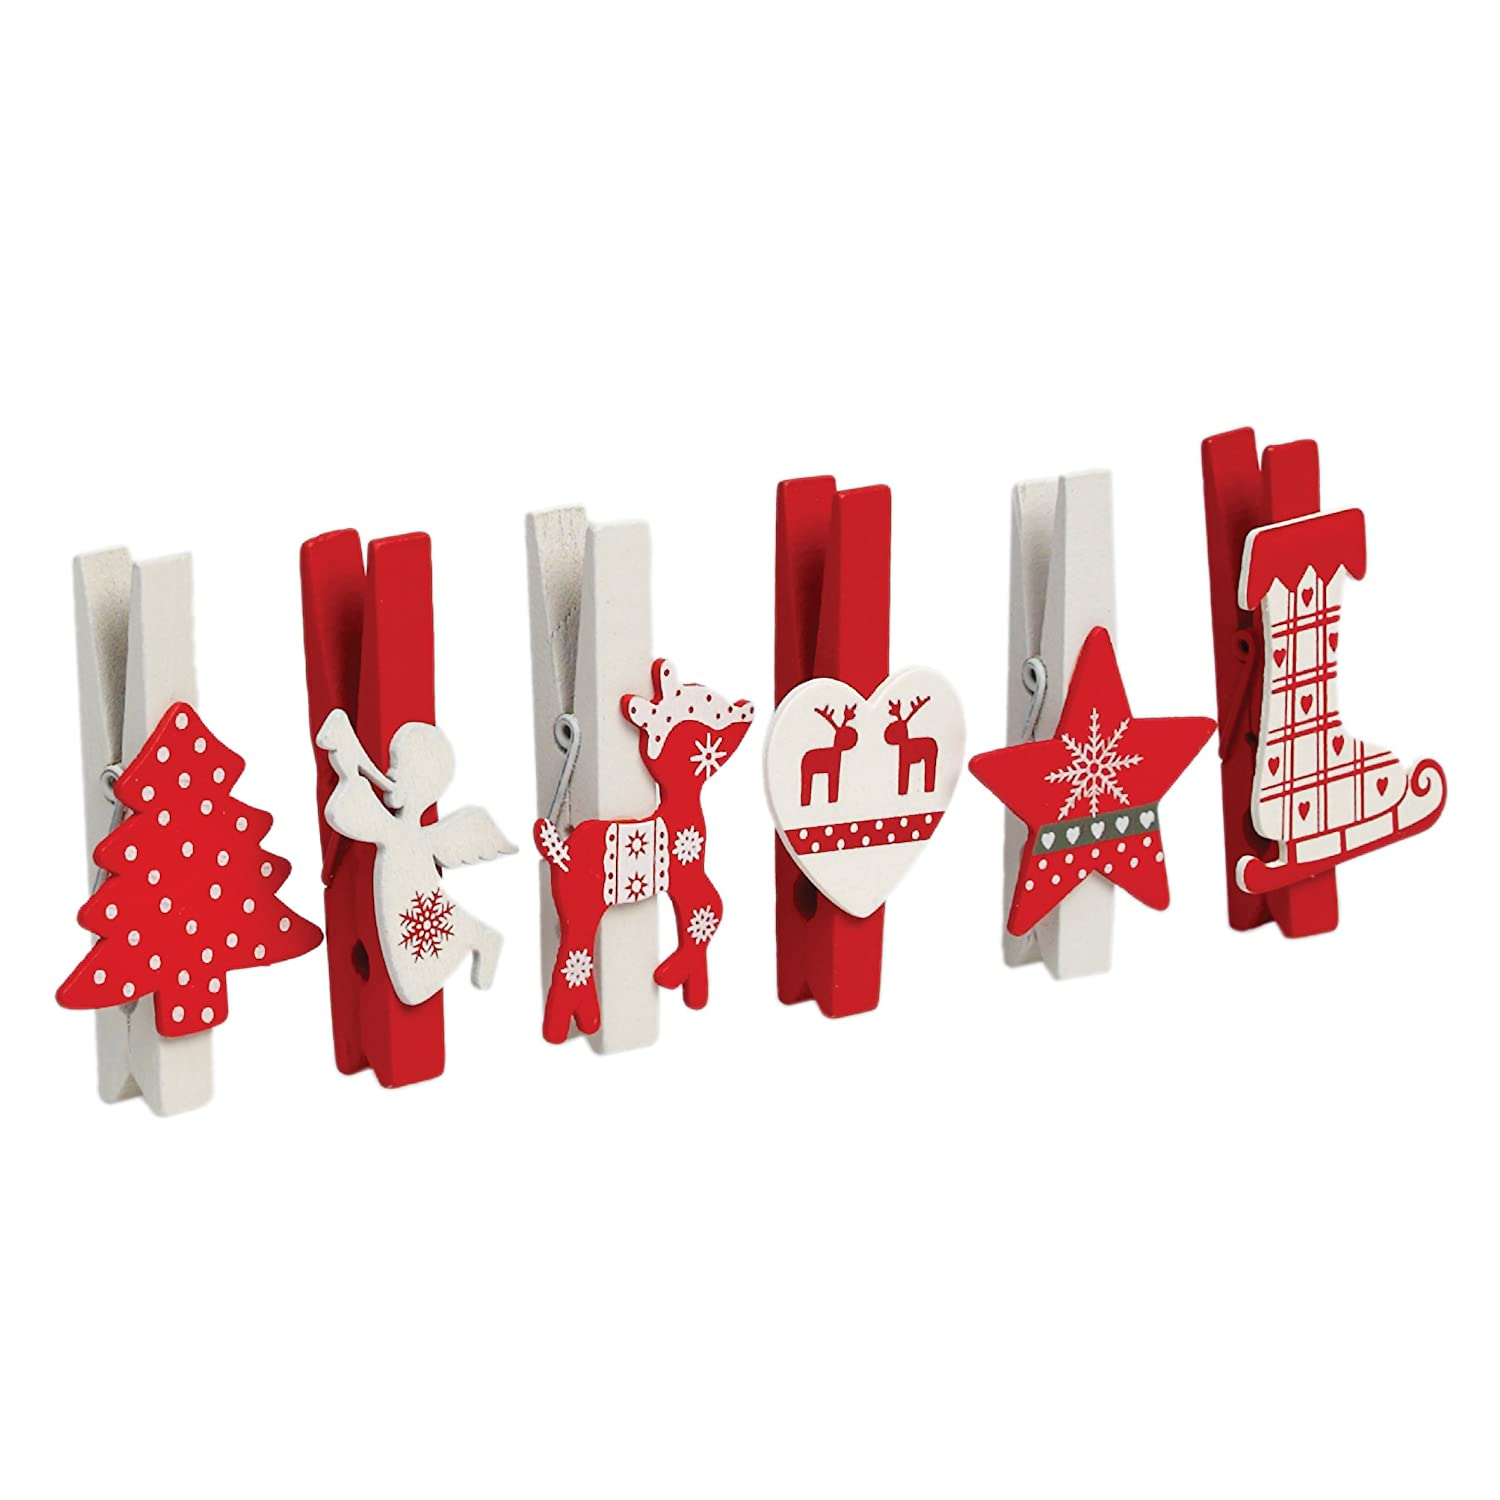 6//12//24 Christmas Xmas Card Hanging White Snowflake Novelty Wooden Small Pegs